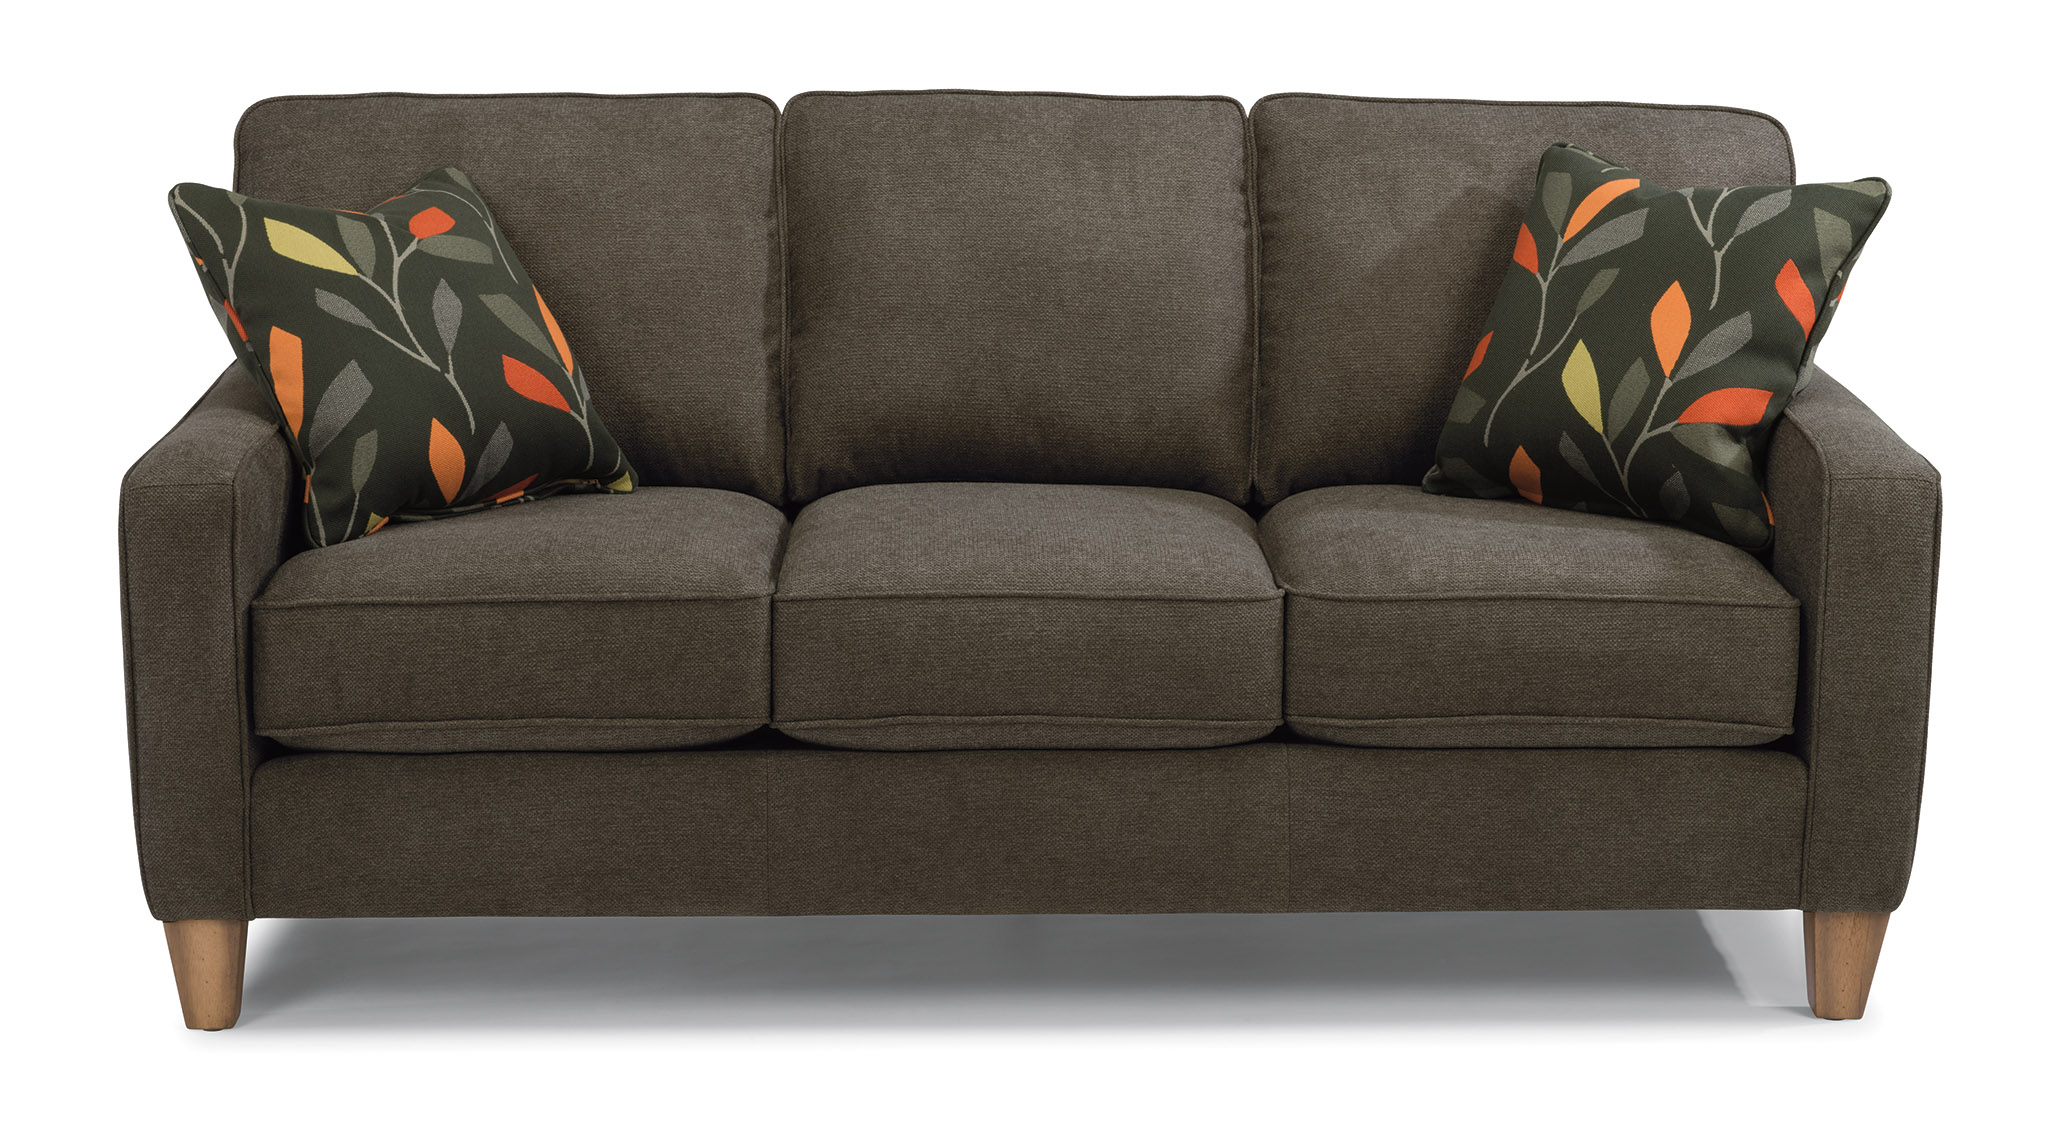 Sofa Outlet Amish And Furniture